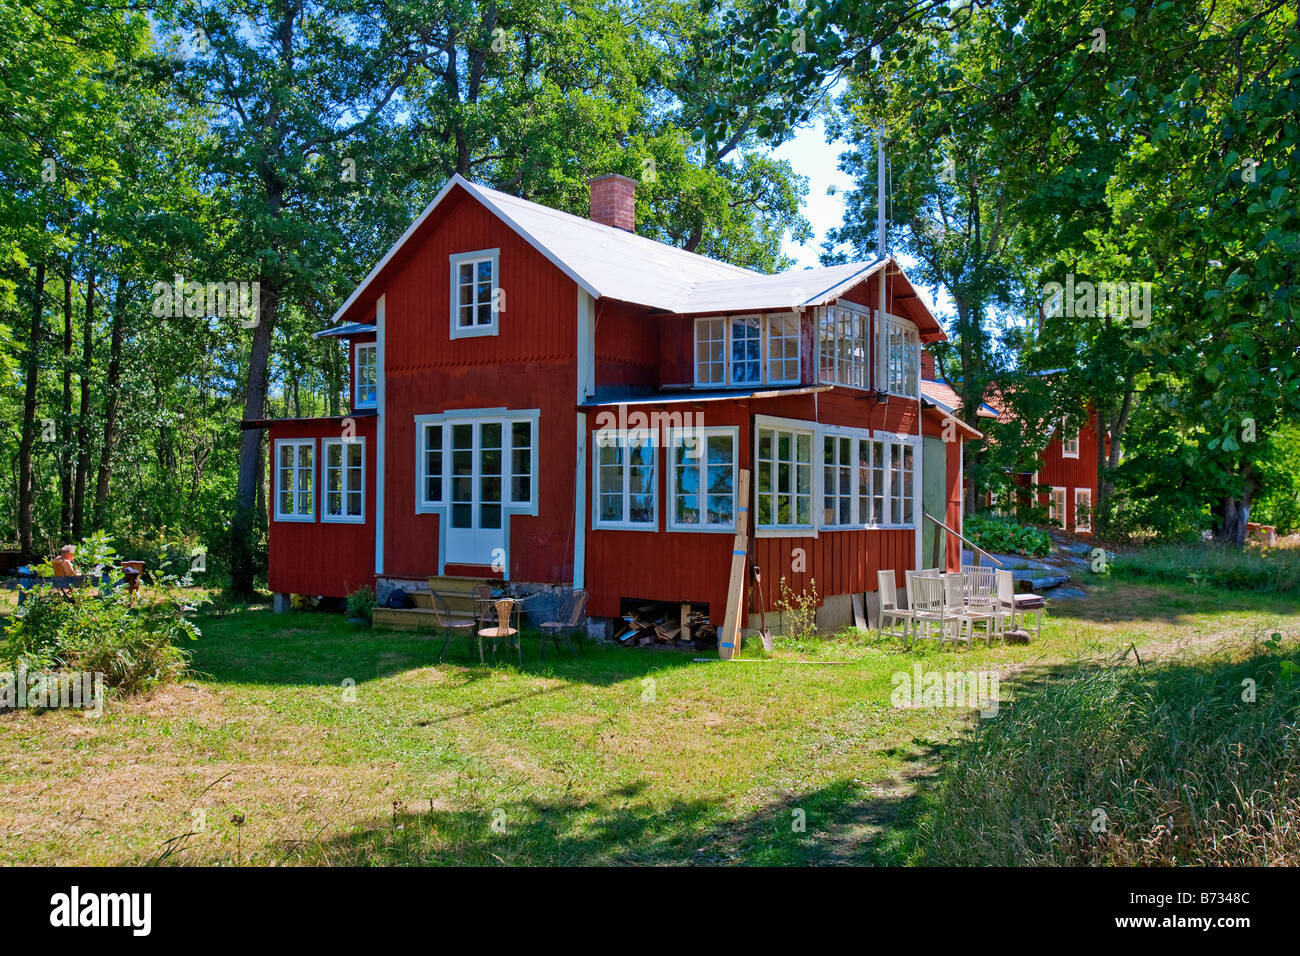 schweden stockholm stockholm u eren sch ren r dl ga insel typischen traditionellen rotes haus. Black Bedroom Furniture Sets. Home Design Ideas